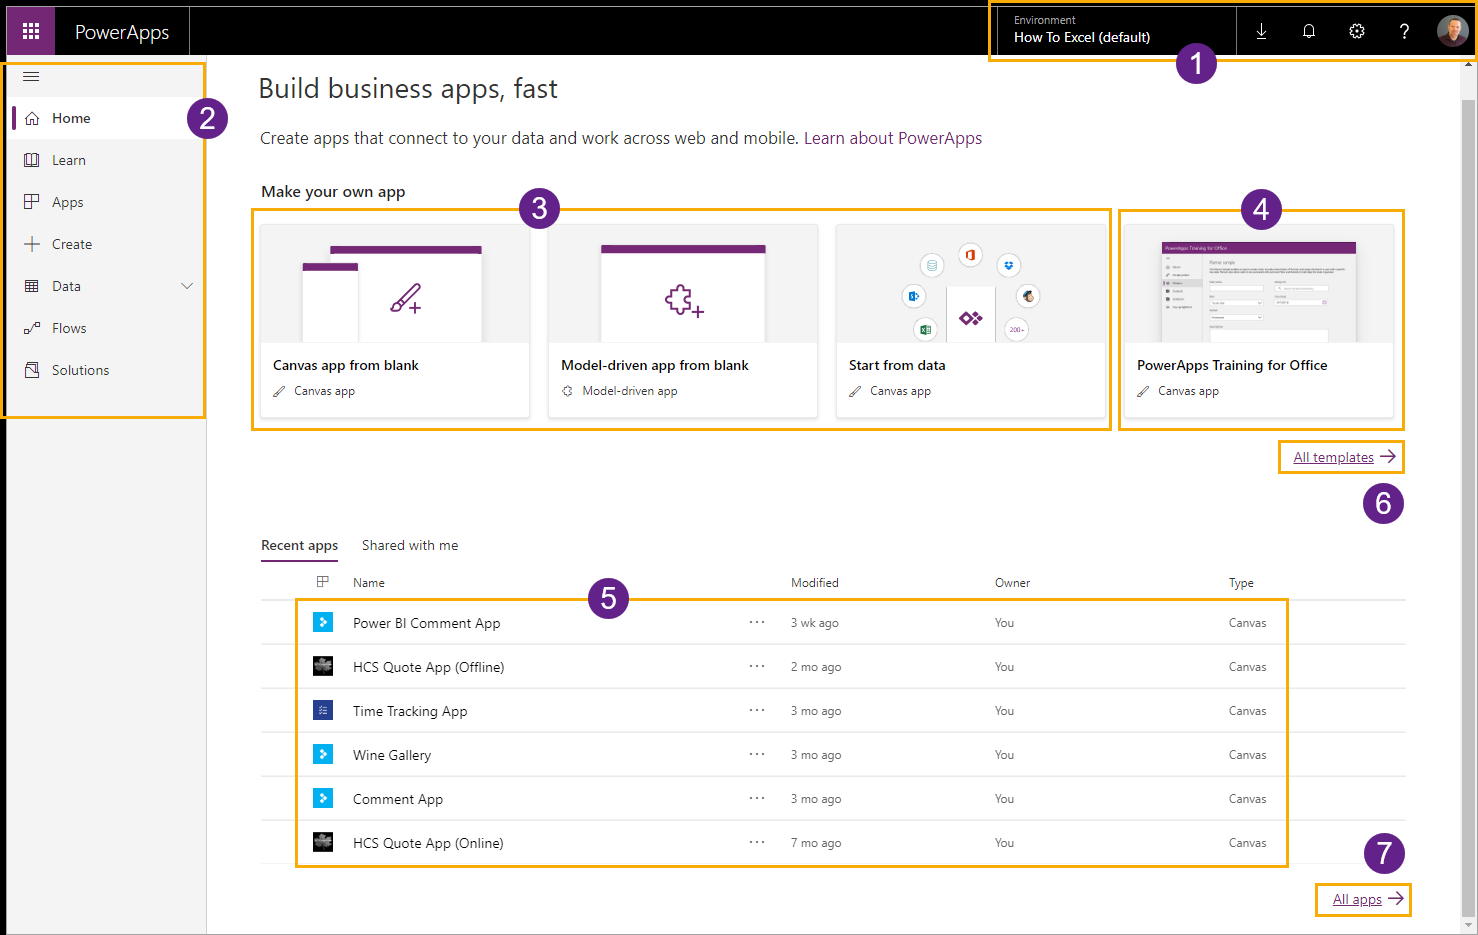 The Complete Guide To Microsoft PowerApps | How To Excel